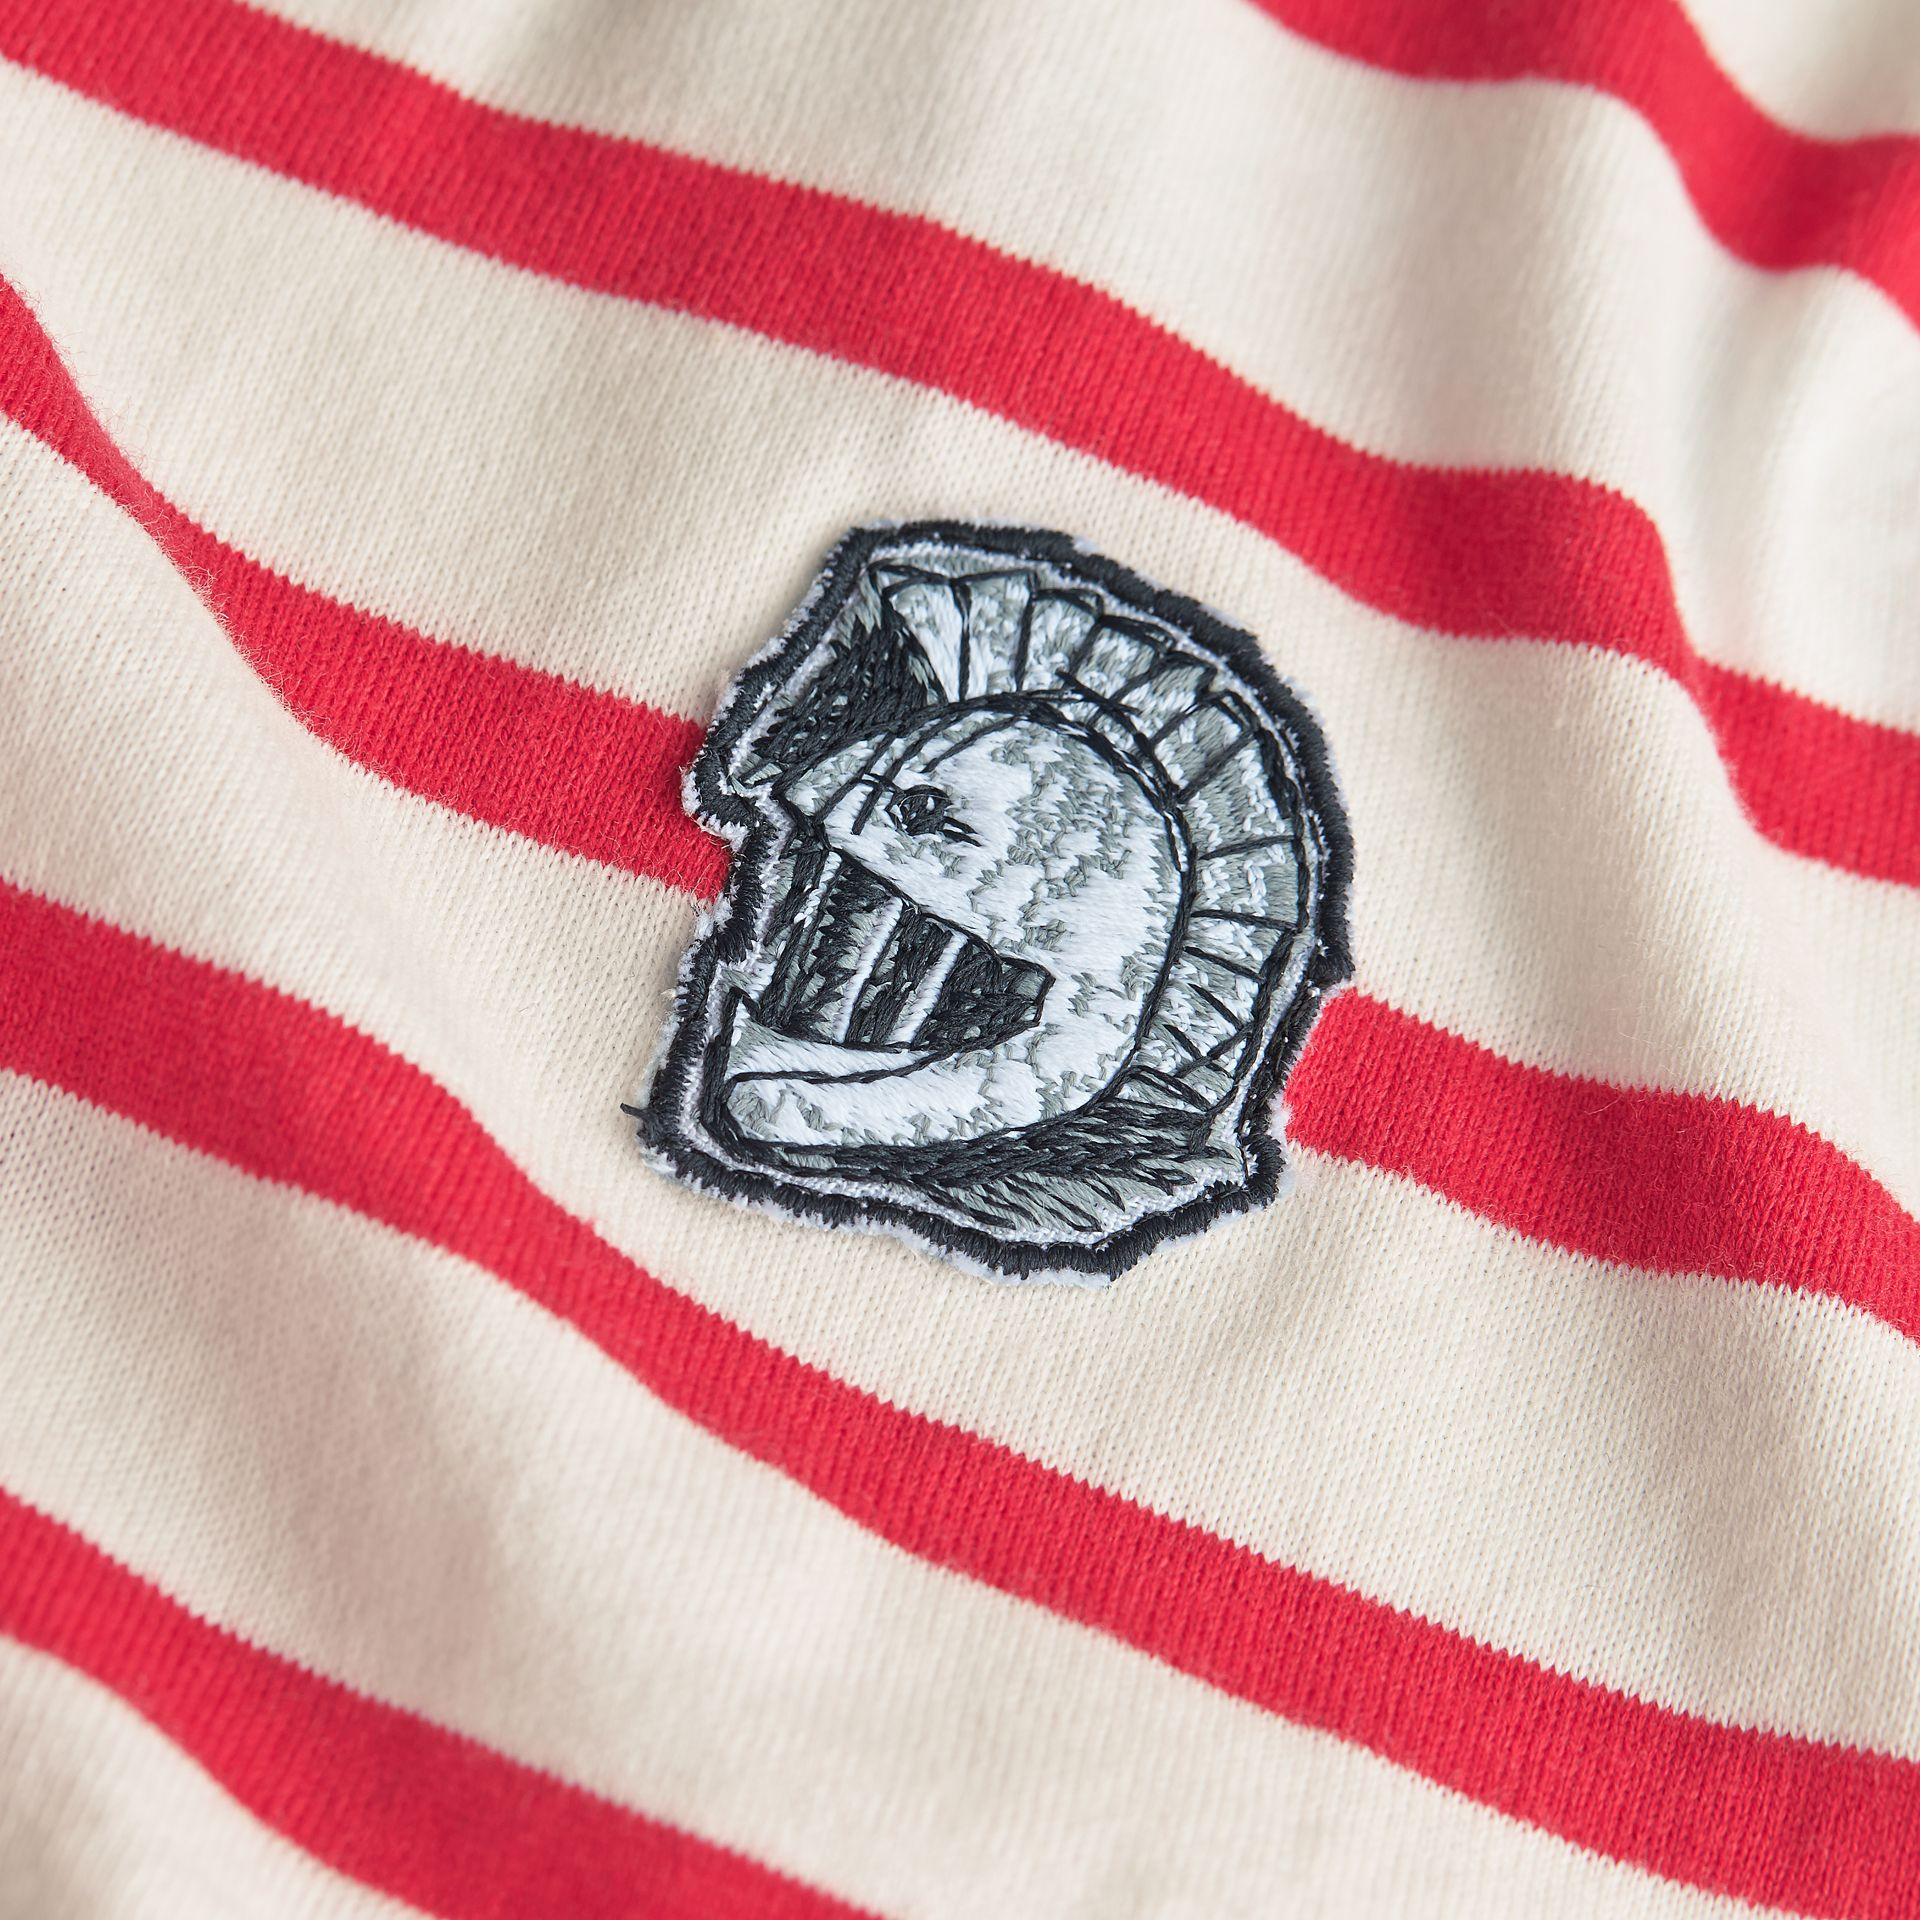 Unisex Pallas Helmet Motif Breton Stripe Cotton Top in Parade Red | Burberry - gallery image 2